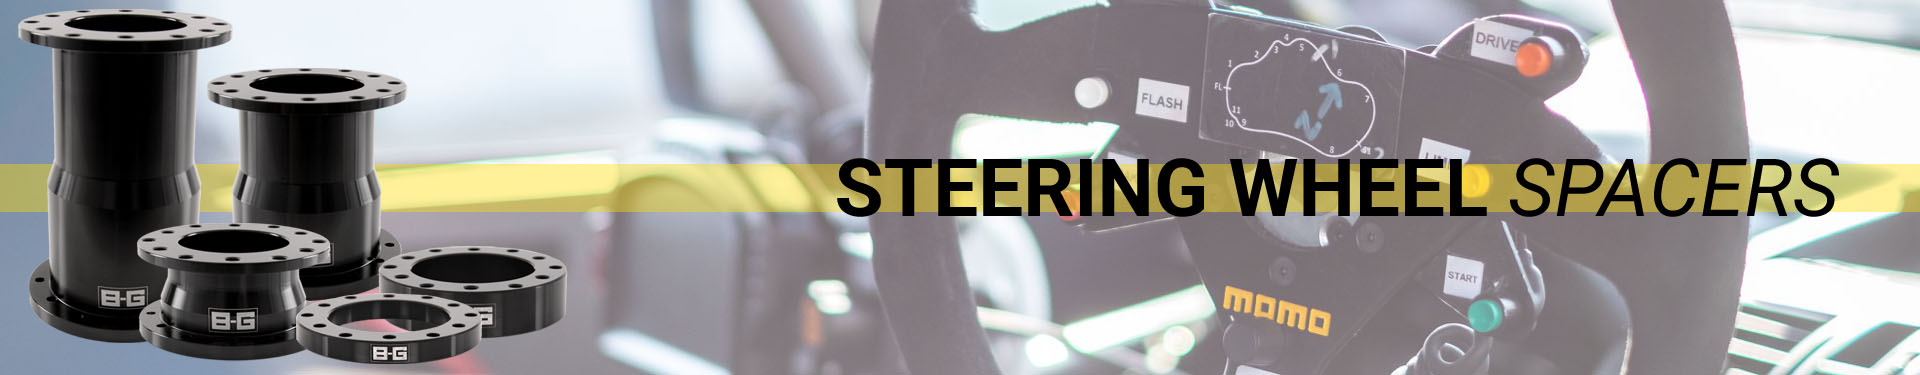 Steering Wheel Spacers